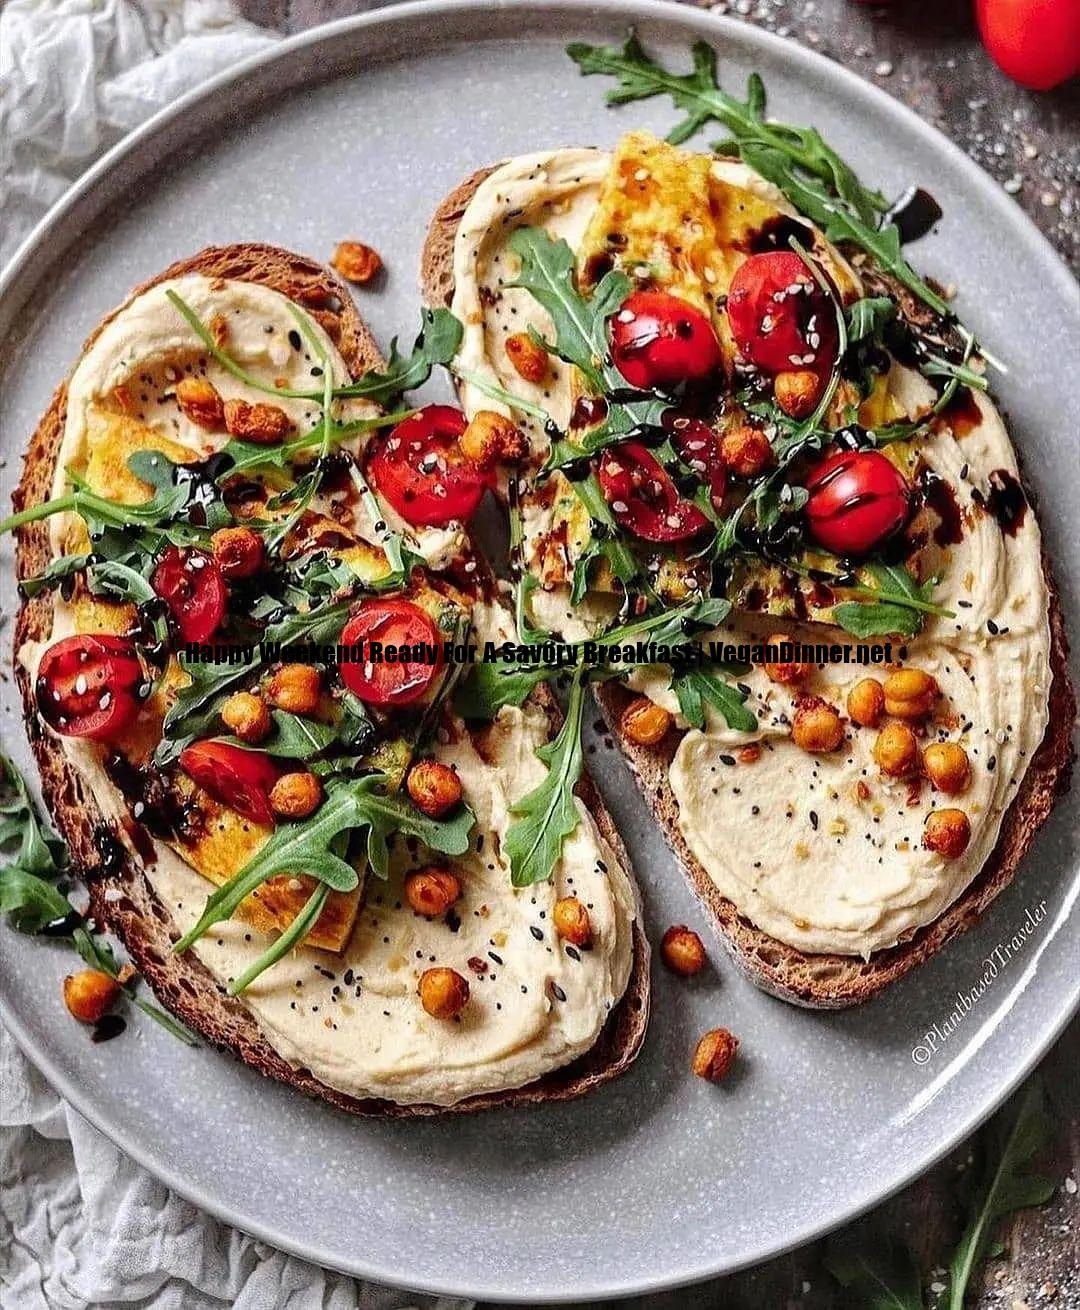 happy weekend ready for a savory breakfast display image df